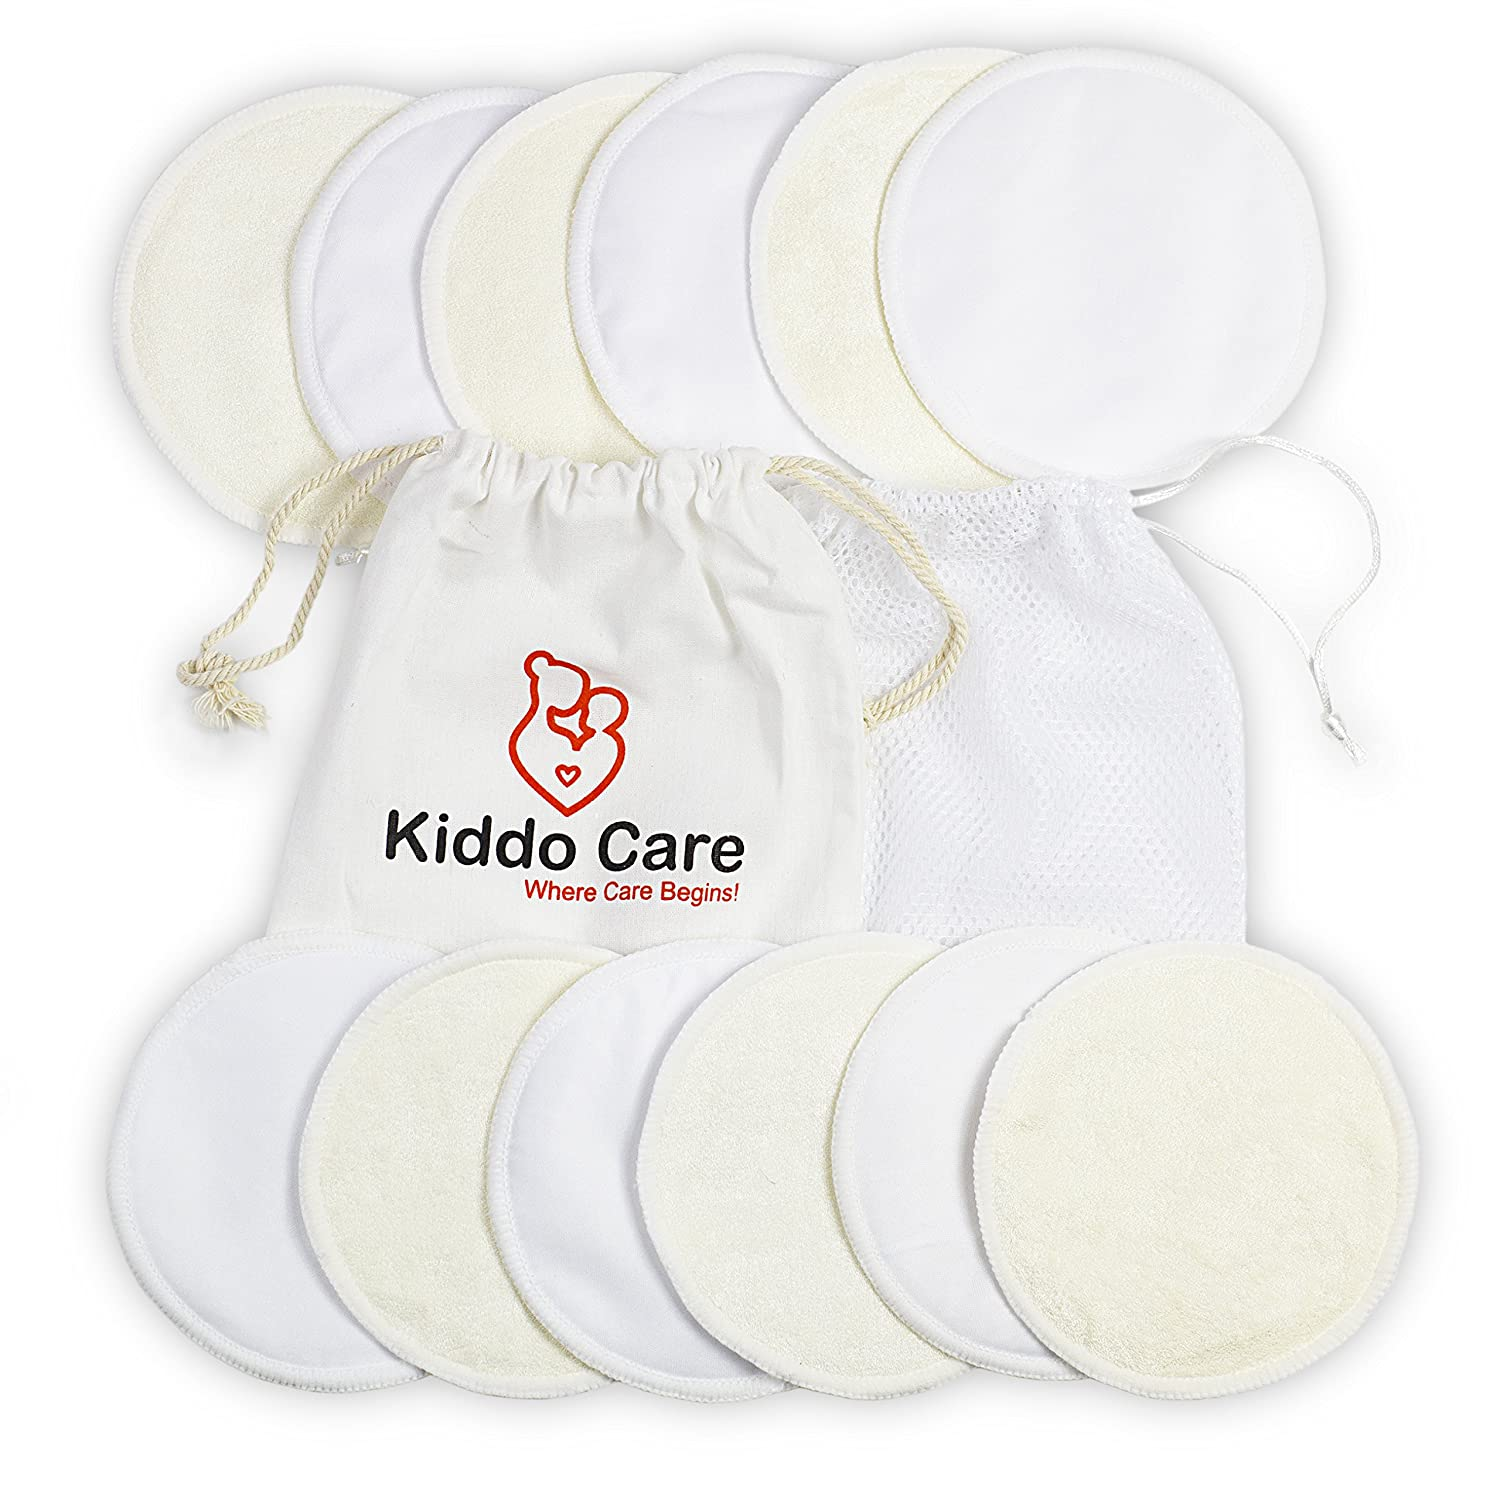 Kiddo Care Washable Organic Bamboo Nursing Pads -12 PACK WHITE (6 pairs)- Reusable Breast Pads,Bra pads, Leakproof, Ultra soft, Waterproof, Hypoallergenic breastfeeding pads, absorbent pads!